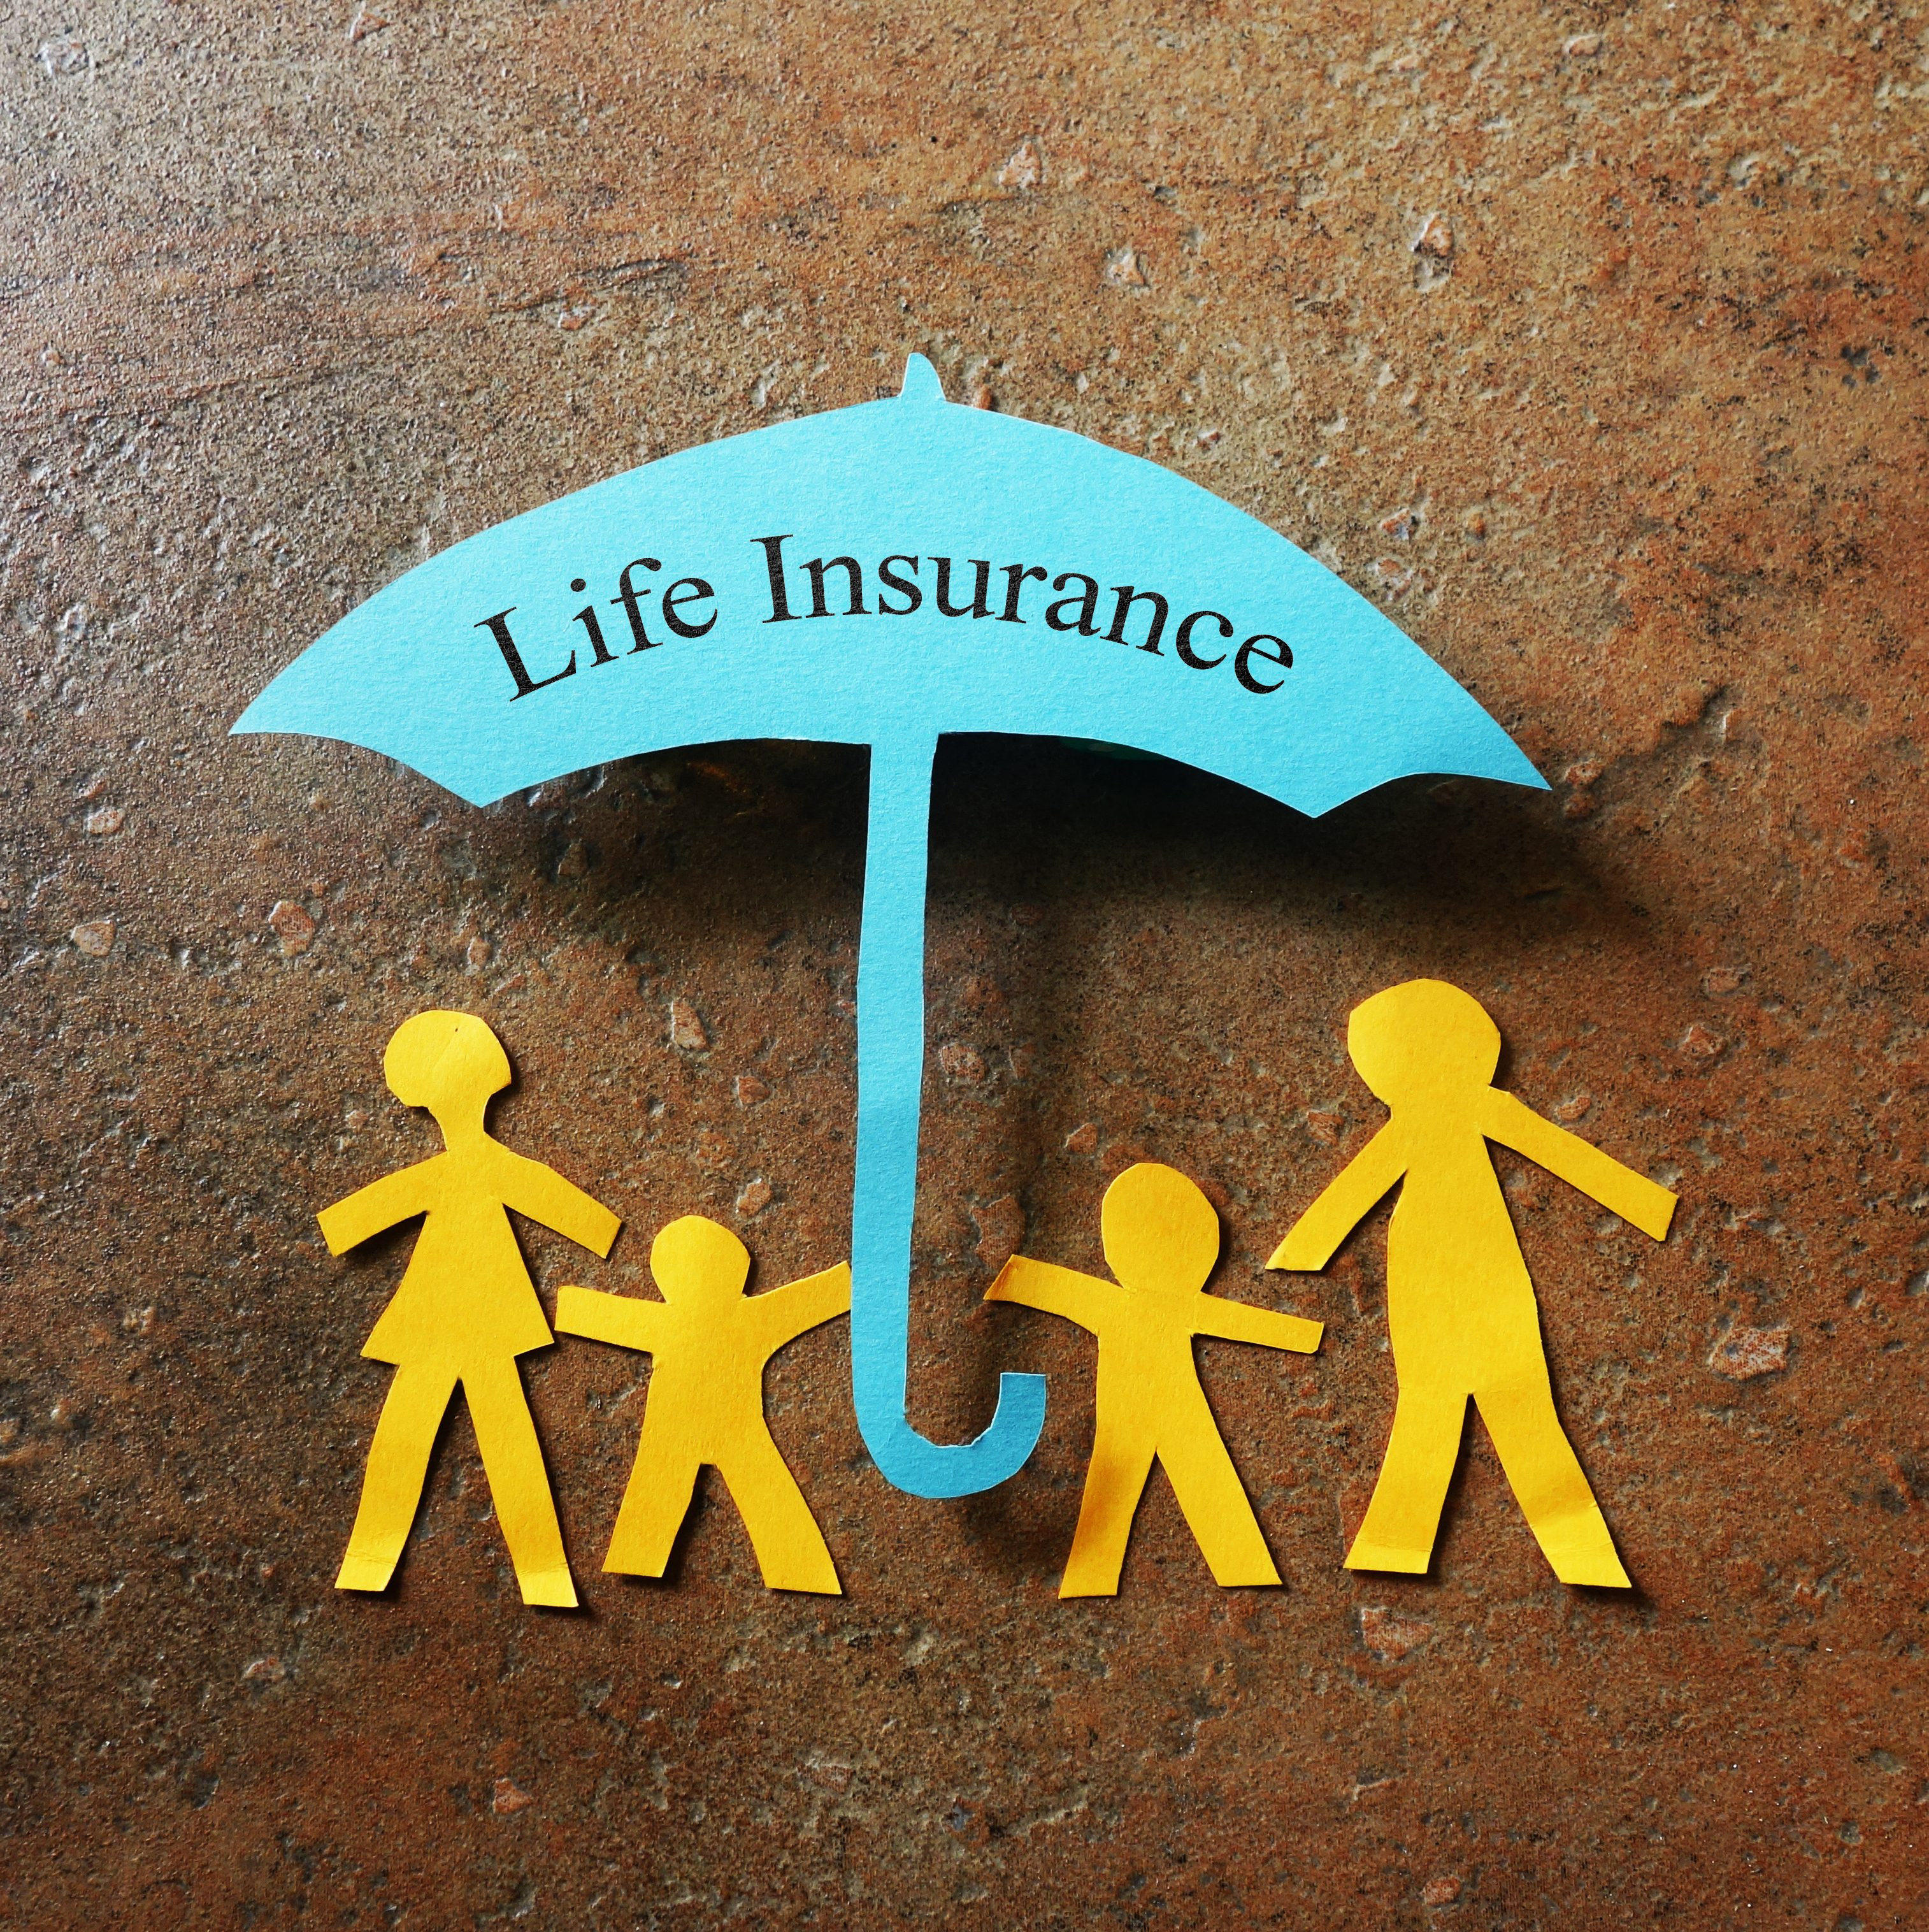 Ernst Auto Group Provides a Life Insurance Plan